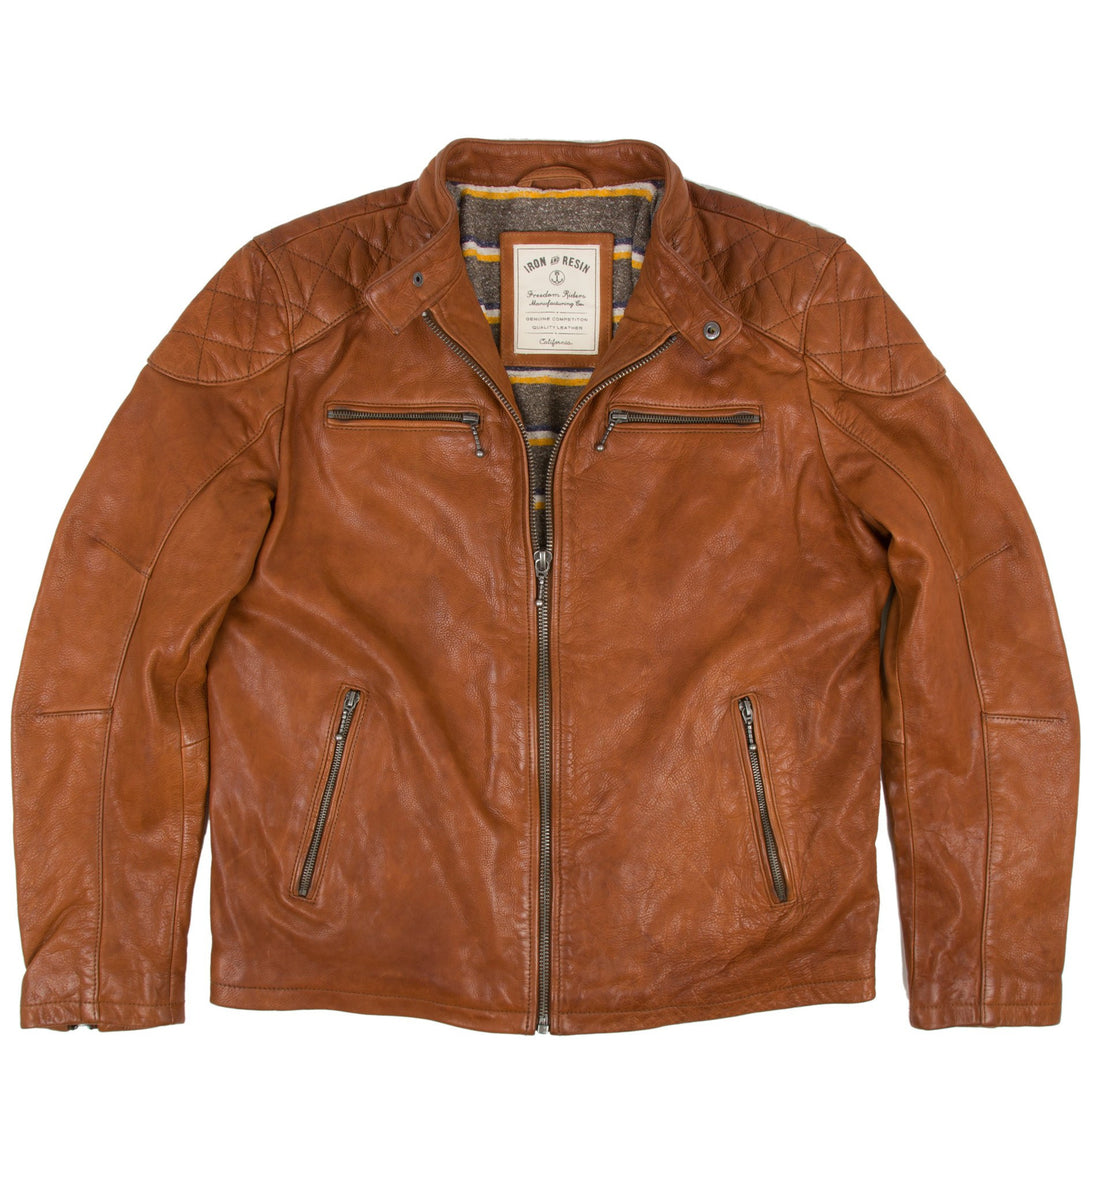 Elsinore Leather Jacket - Outerwear - Iron and Resin